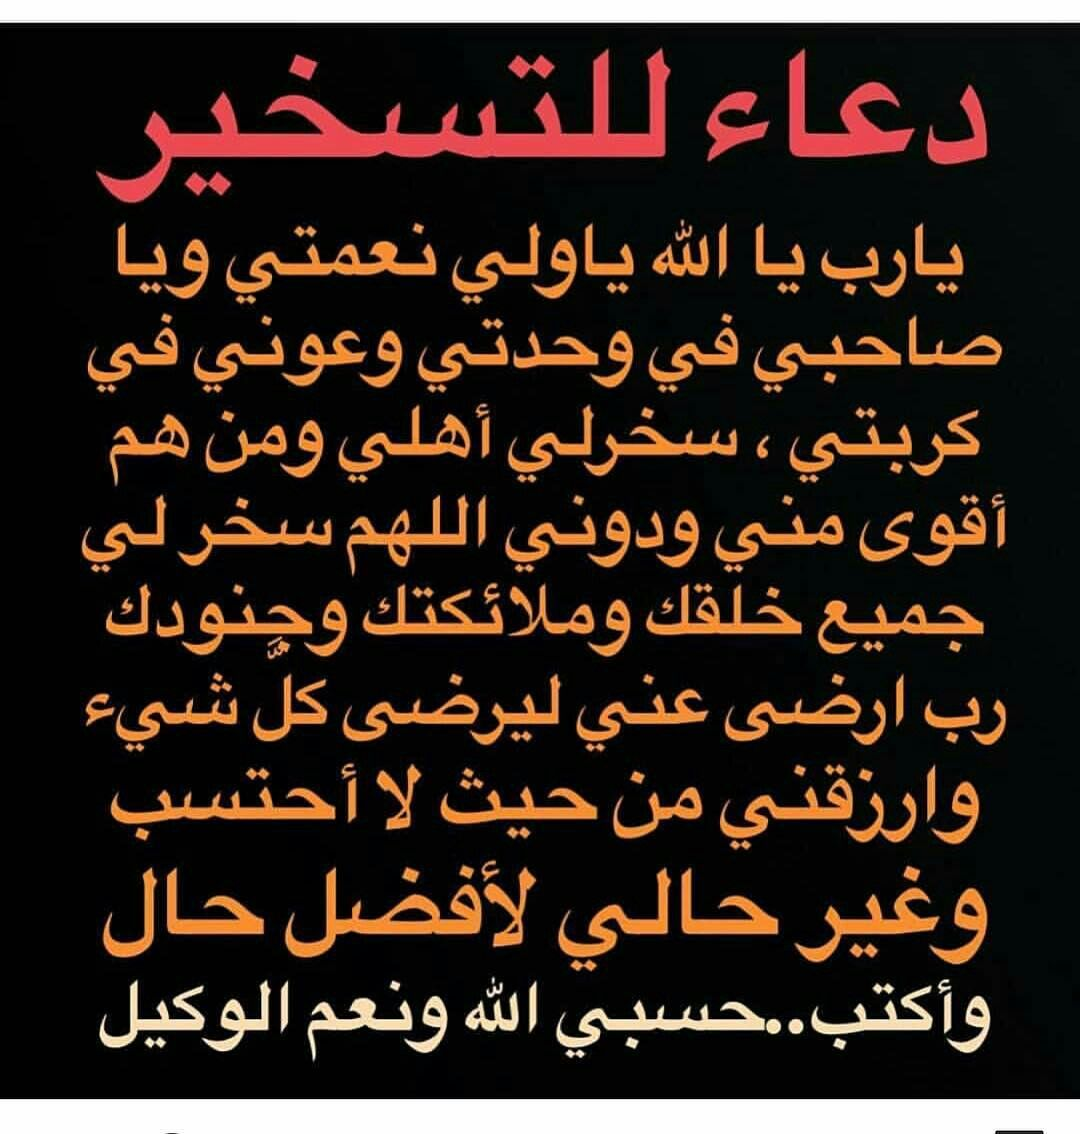 Pin By Shog Mubark On س Islam Facts Islamic Quotes Islamic Quotes Quran